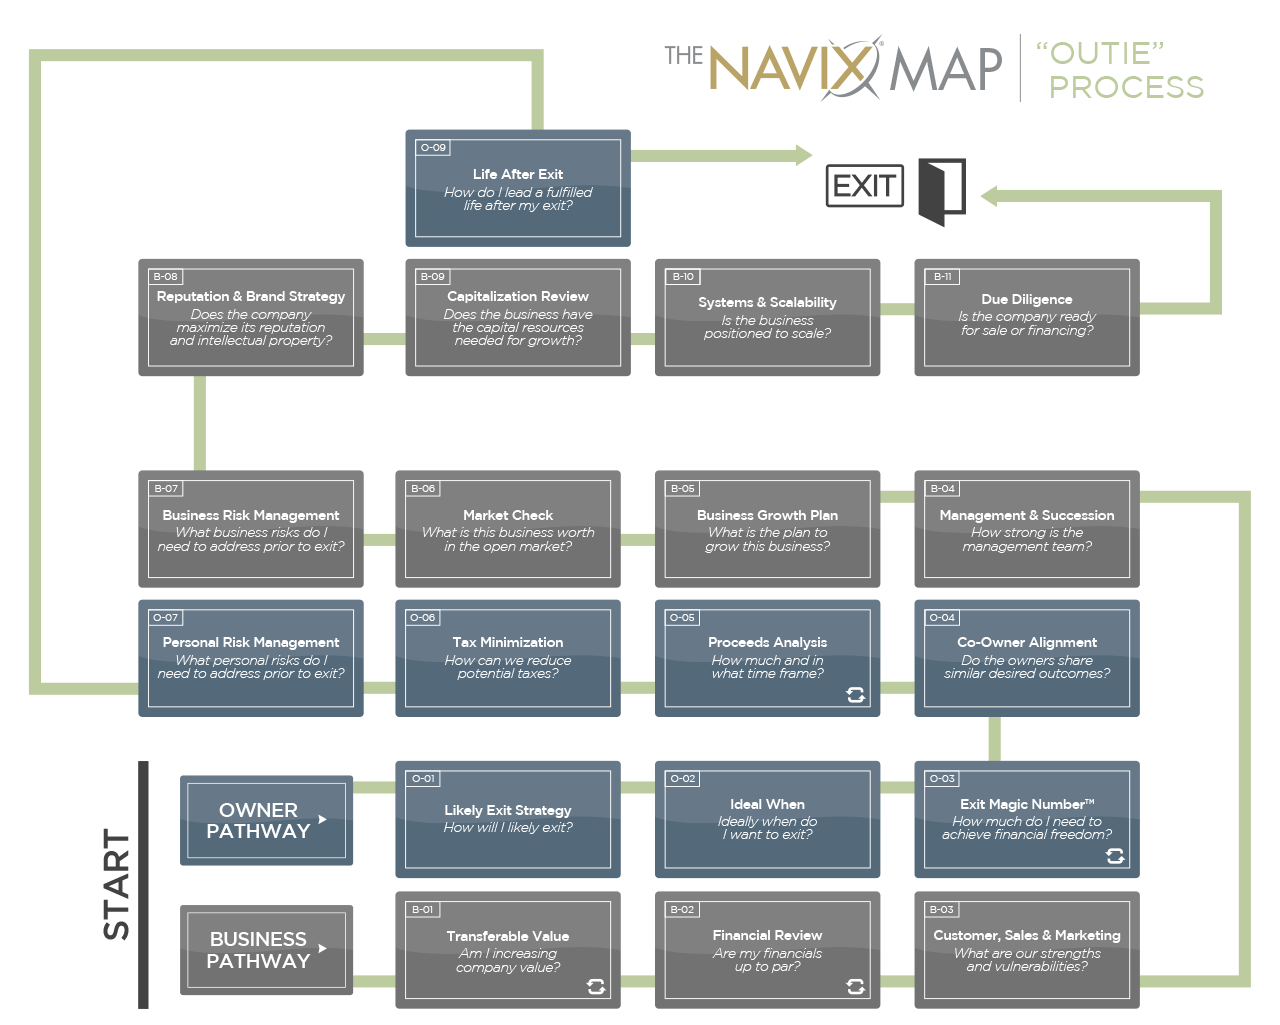 The NAVIX Map   The Outie Process